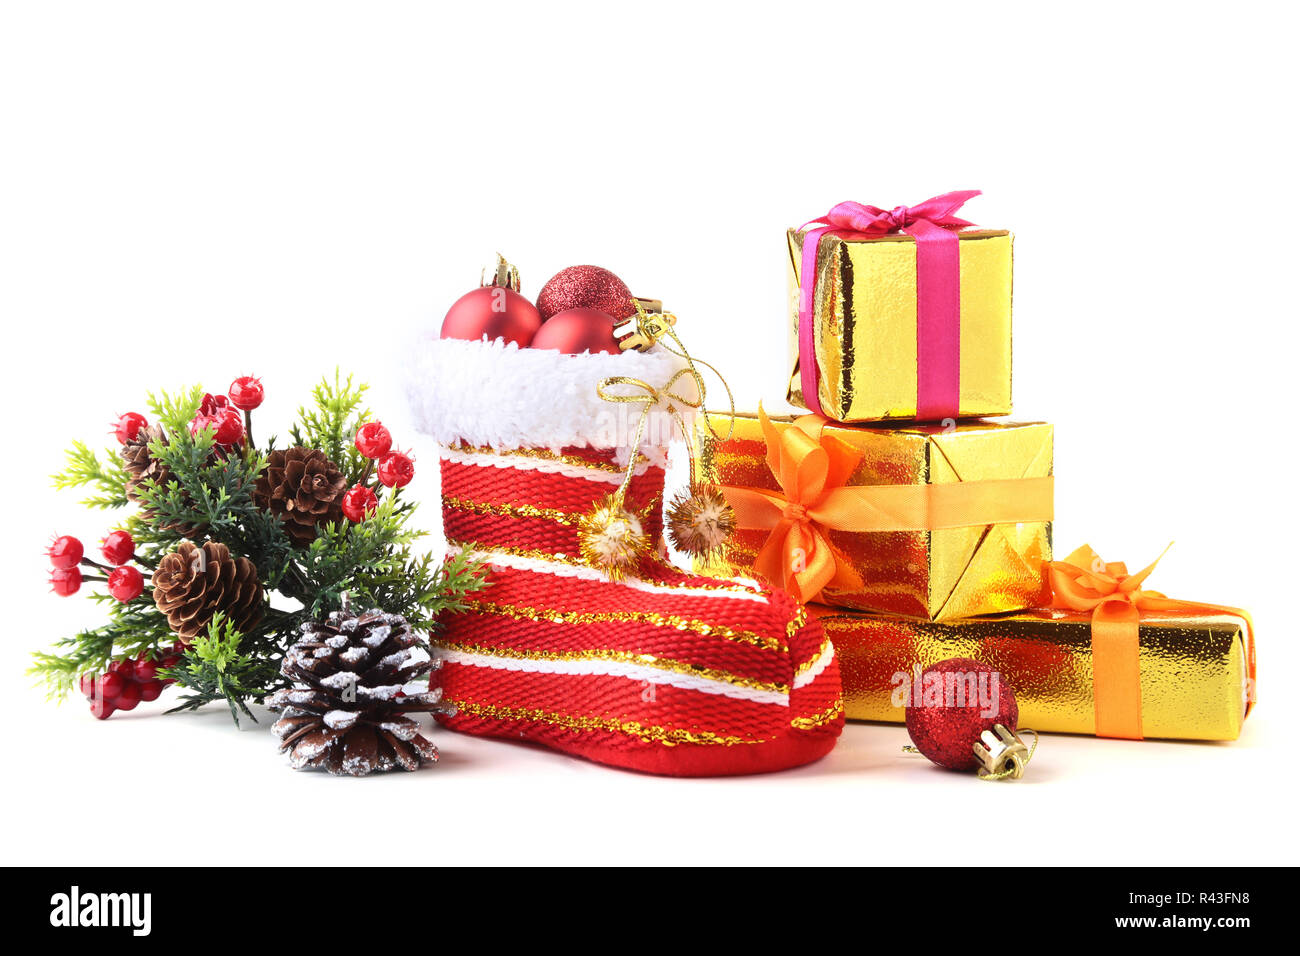 Christmas Shoe.Merry Christmas Composition Santa S Shoe With Gift Boxes